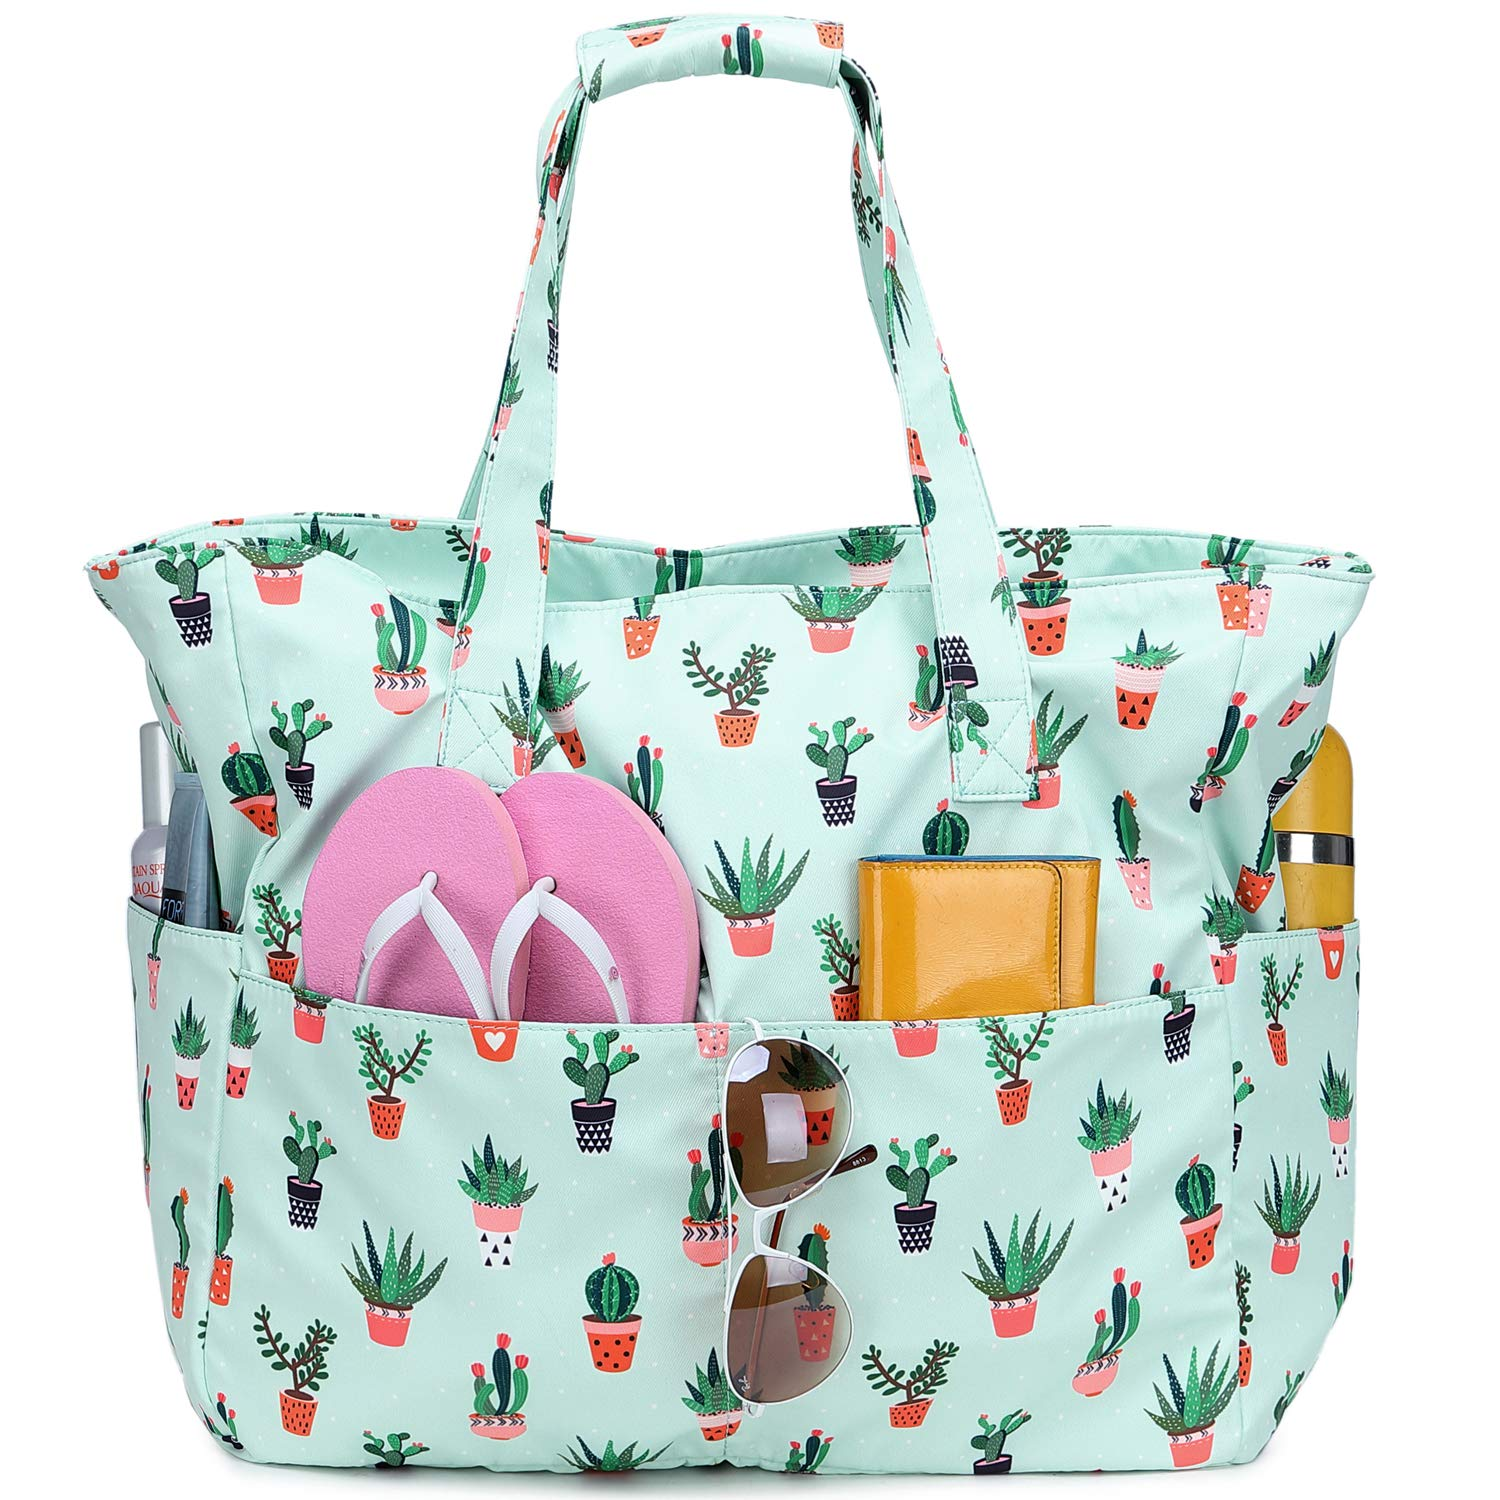 Waterproof Beach Tote Pool Bags for Women Ladies Extra Large Gym Tote Carry On Bag With Wet Compartment for Weekender Travel Cactus Green